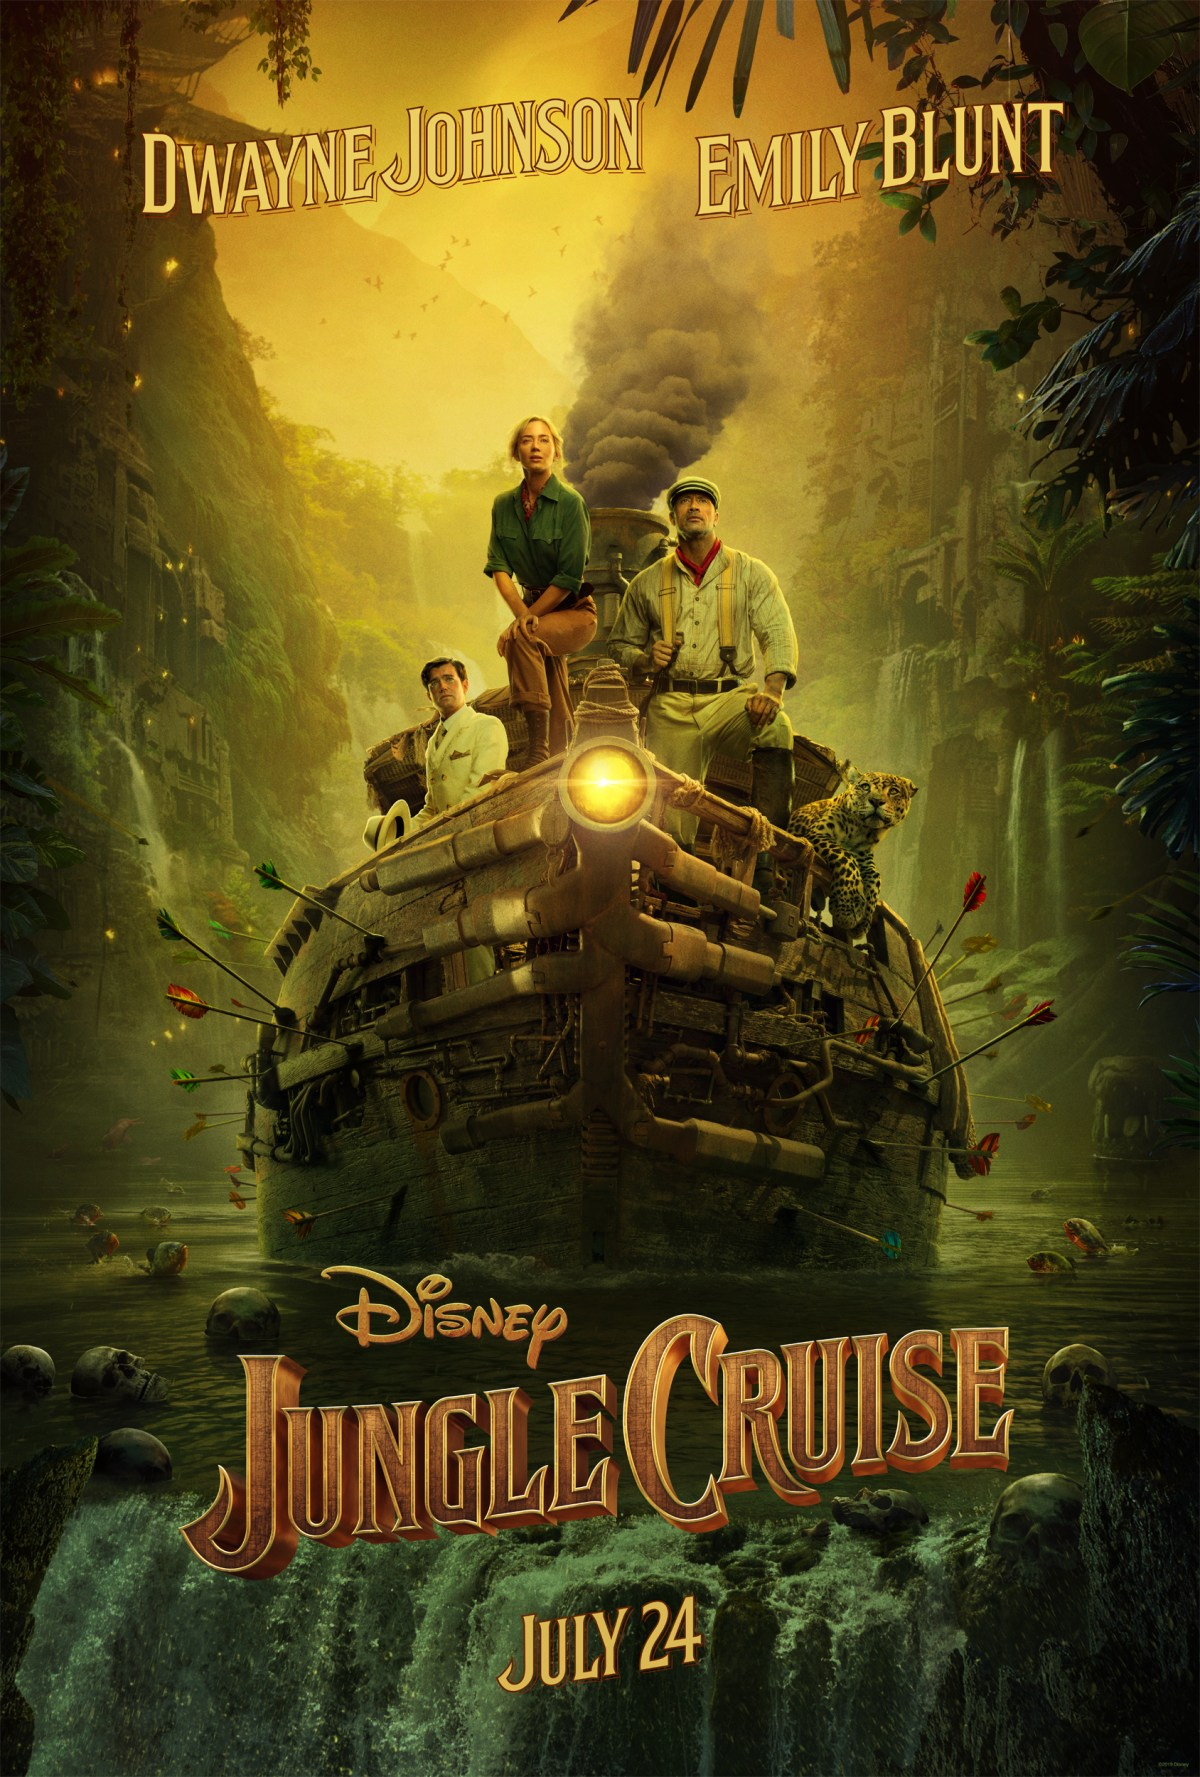 Disney's The Jungle Cruise Poster